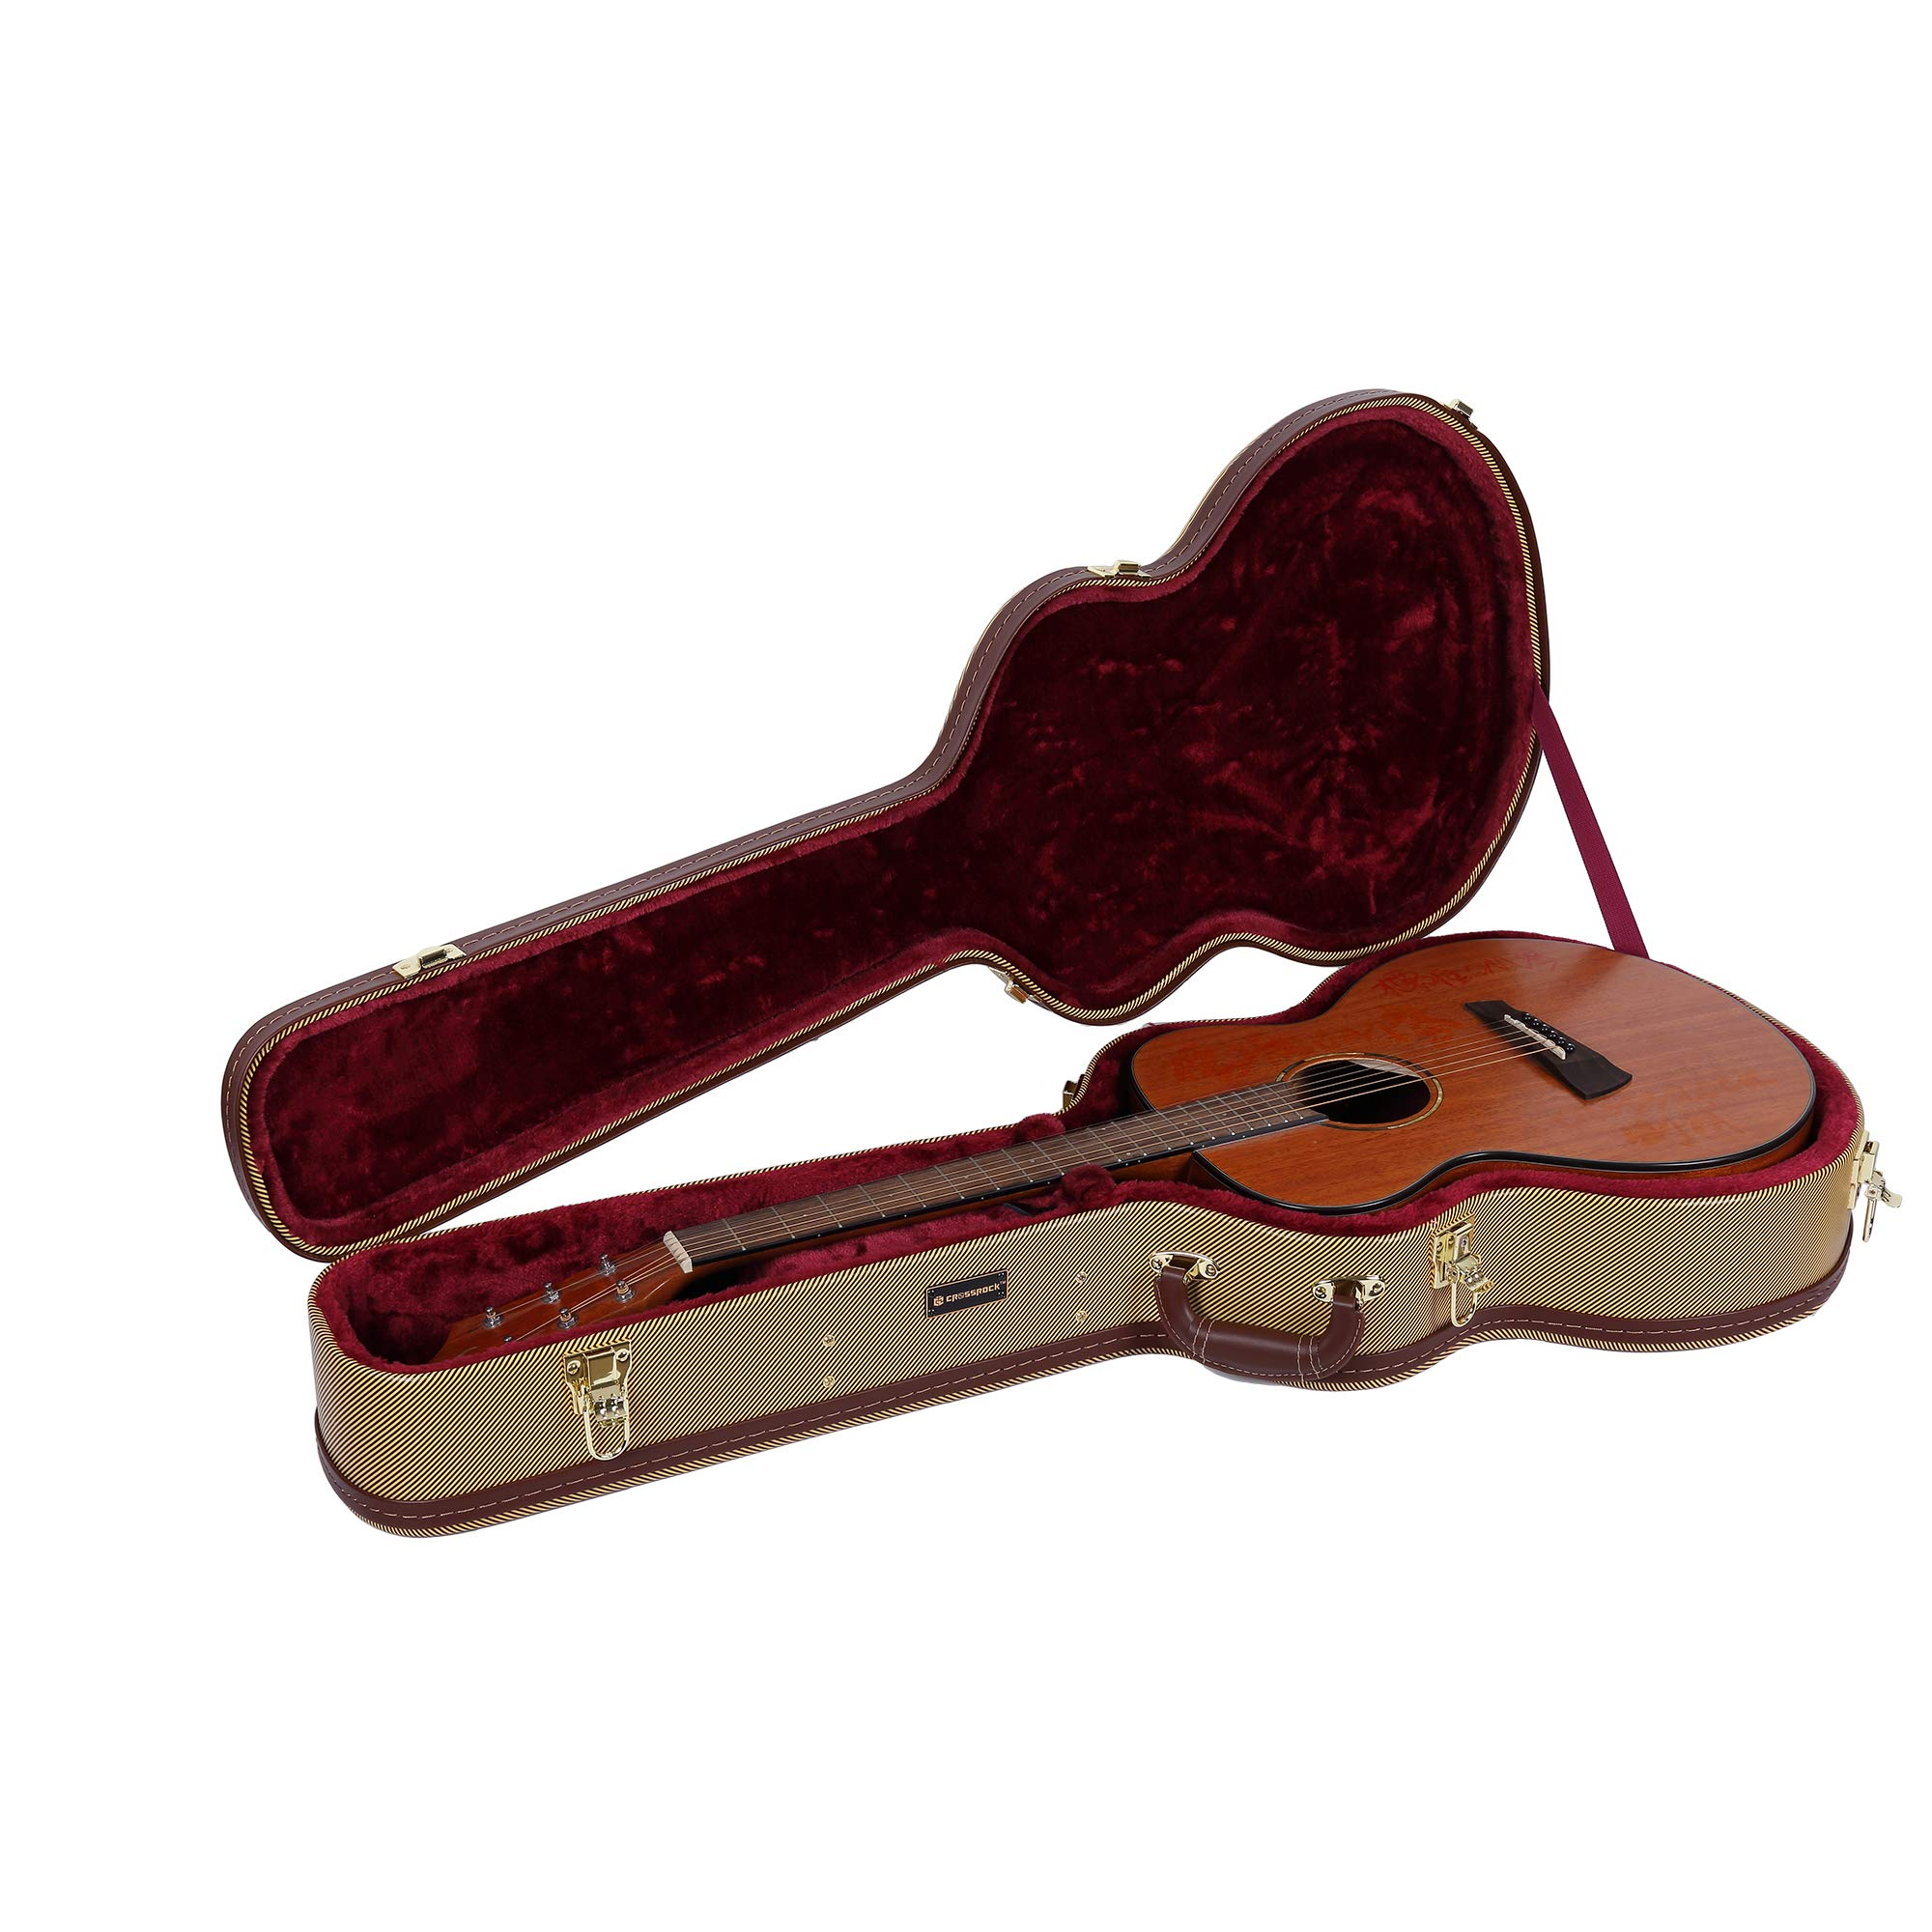 Crossrock Deluxe Wood Hard Case for OM/000 Guitar Case, Compatible to 4/4 Classical Guitar, Tweed(CRW600OMTW)